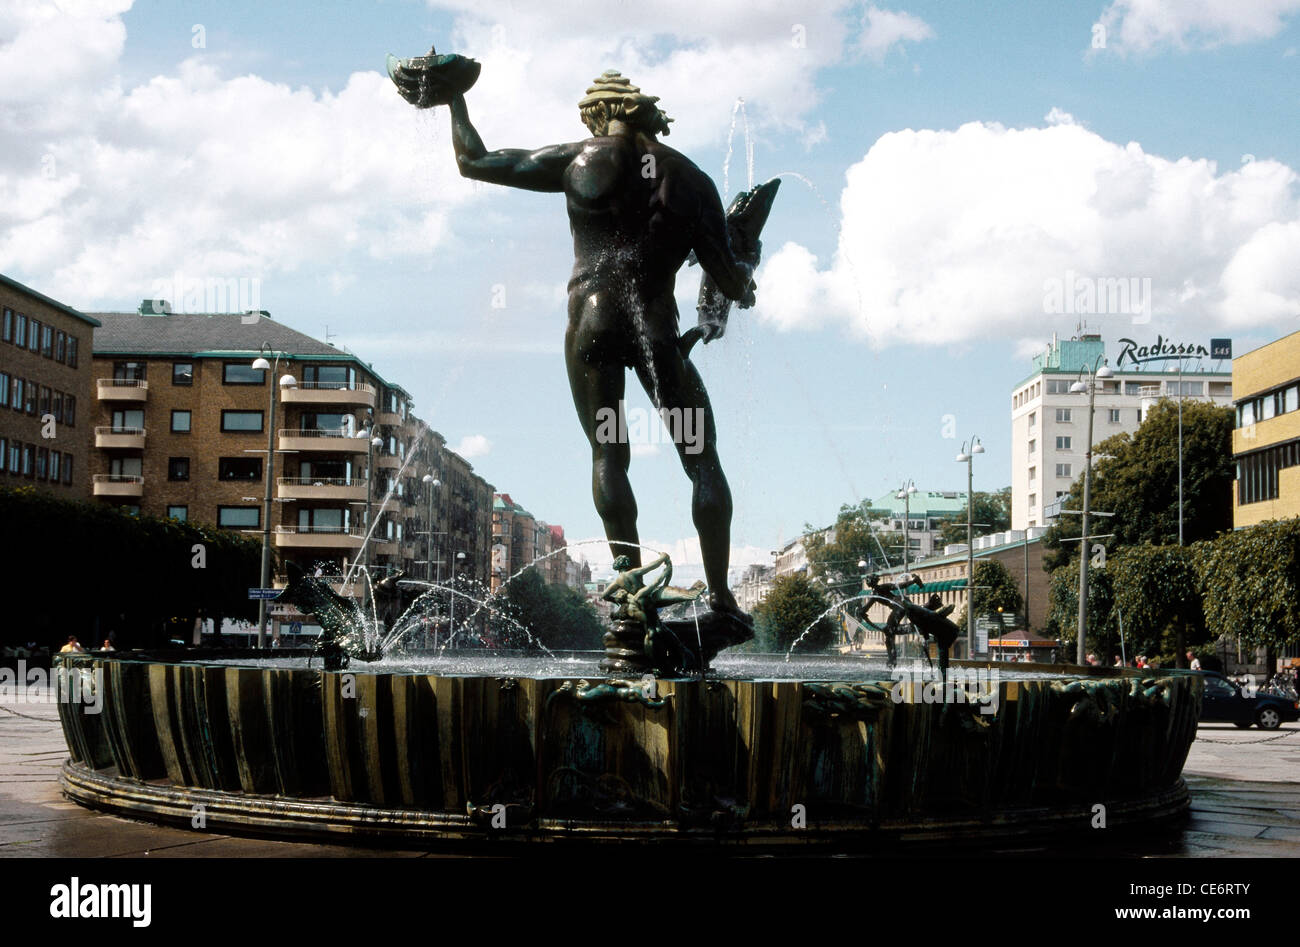 Water fountains with statues - Ang 87871 Statue Of Poseidon Water Fountain Roundabout Gotaplatsen Gothenburg Sweden